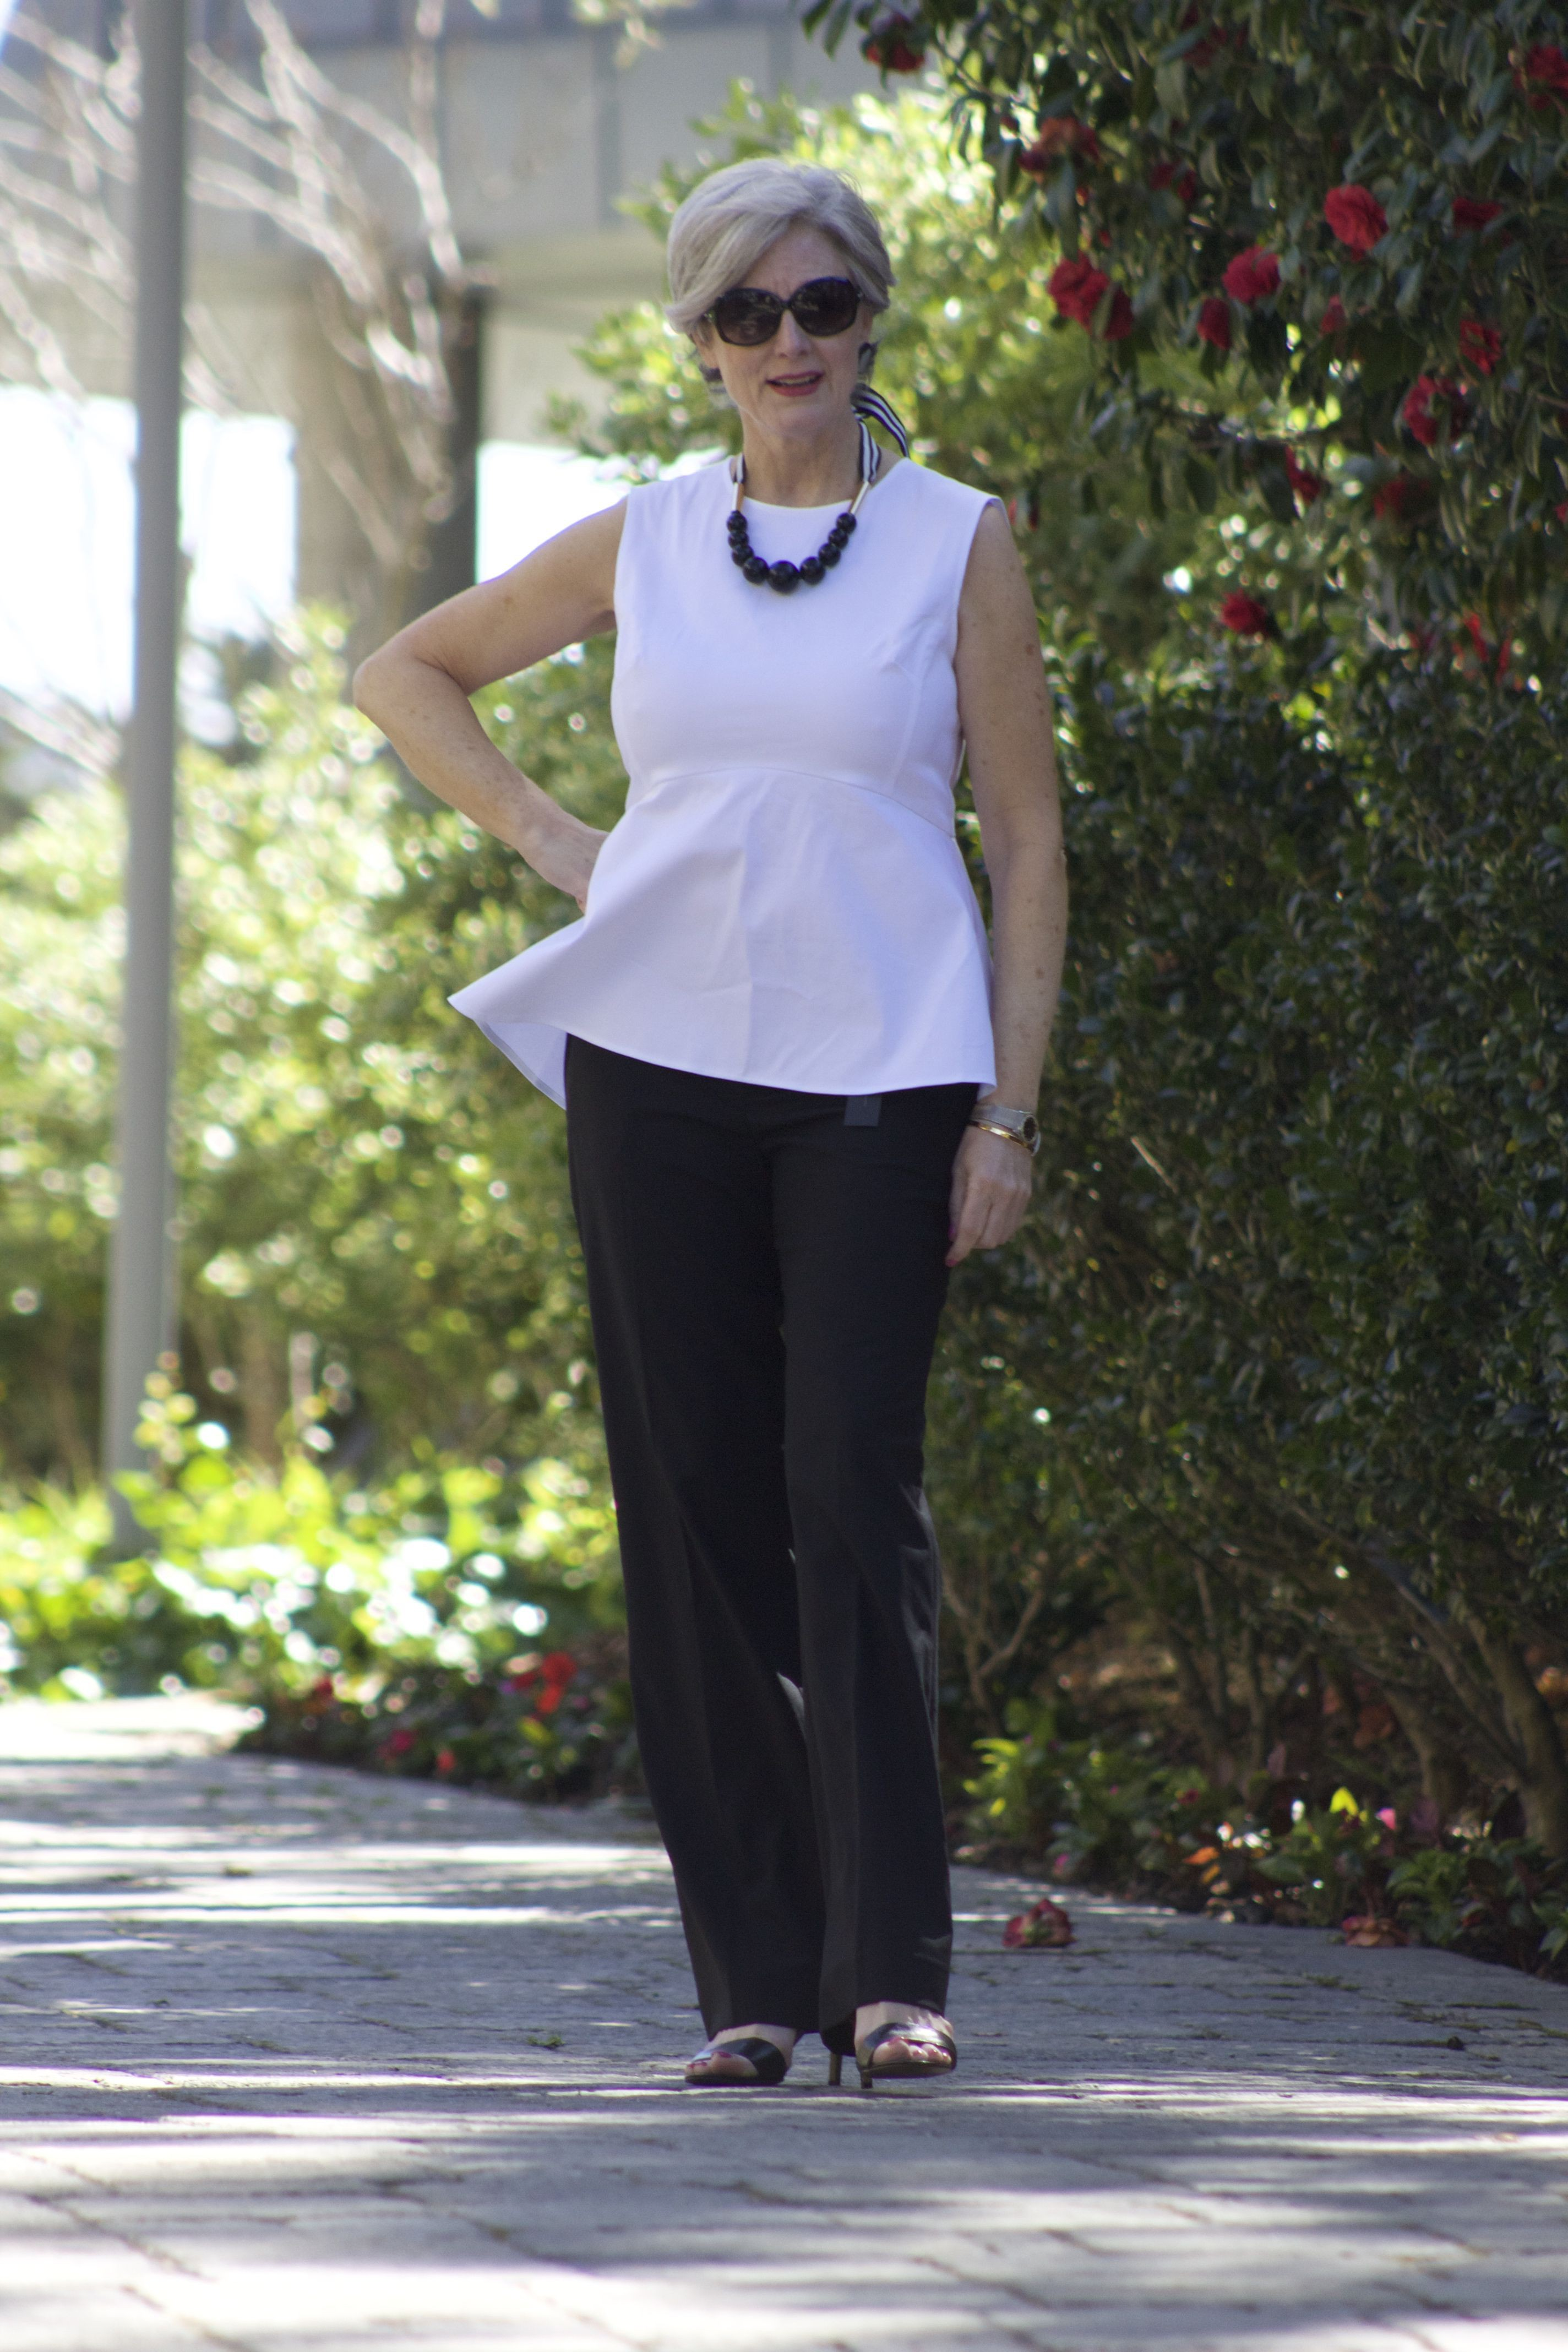 White dresses ideas with trousers, jeans